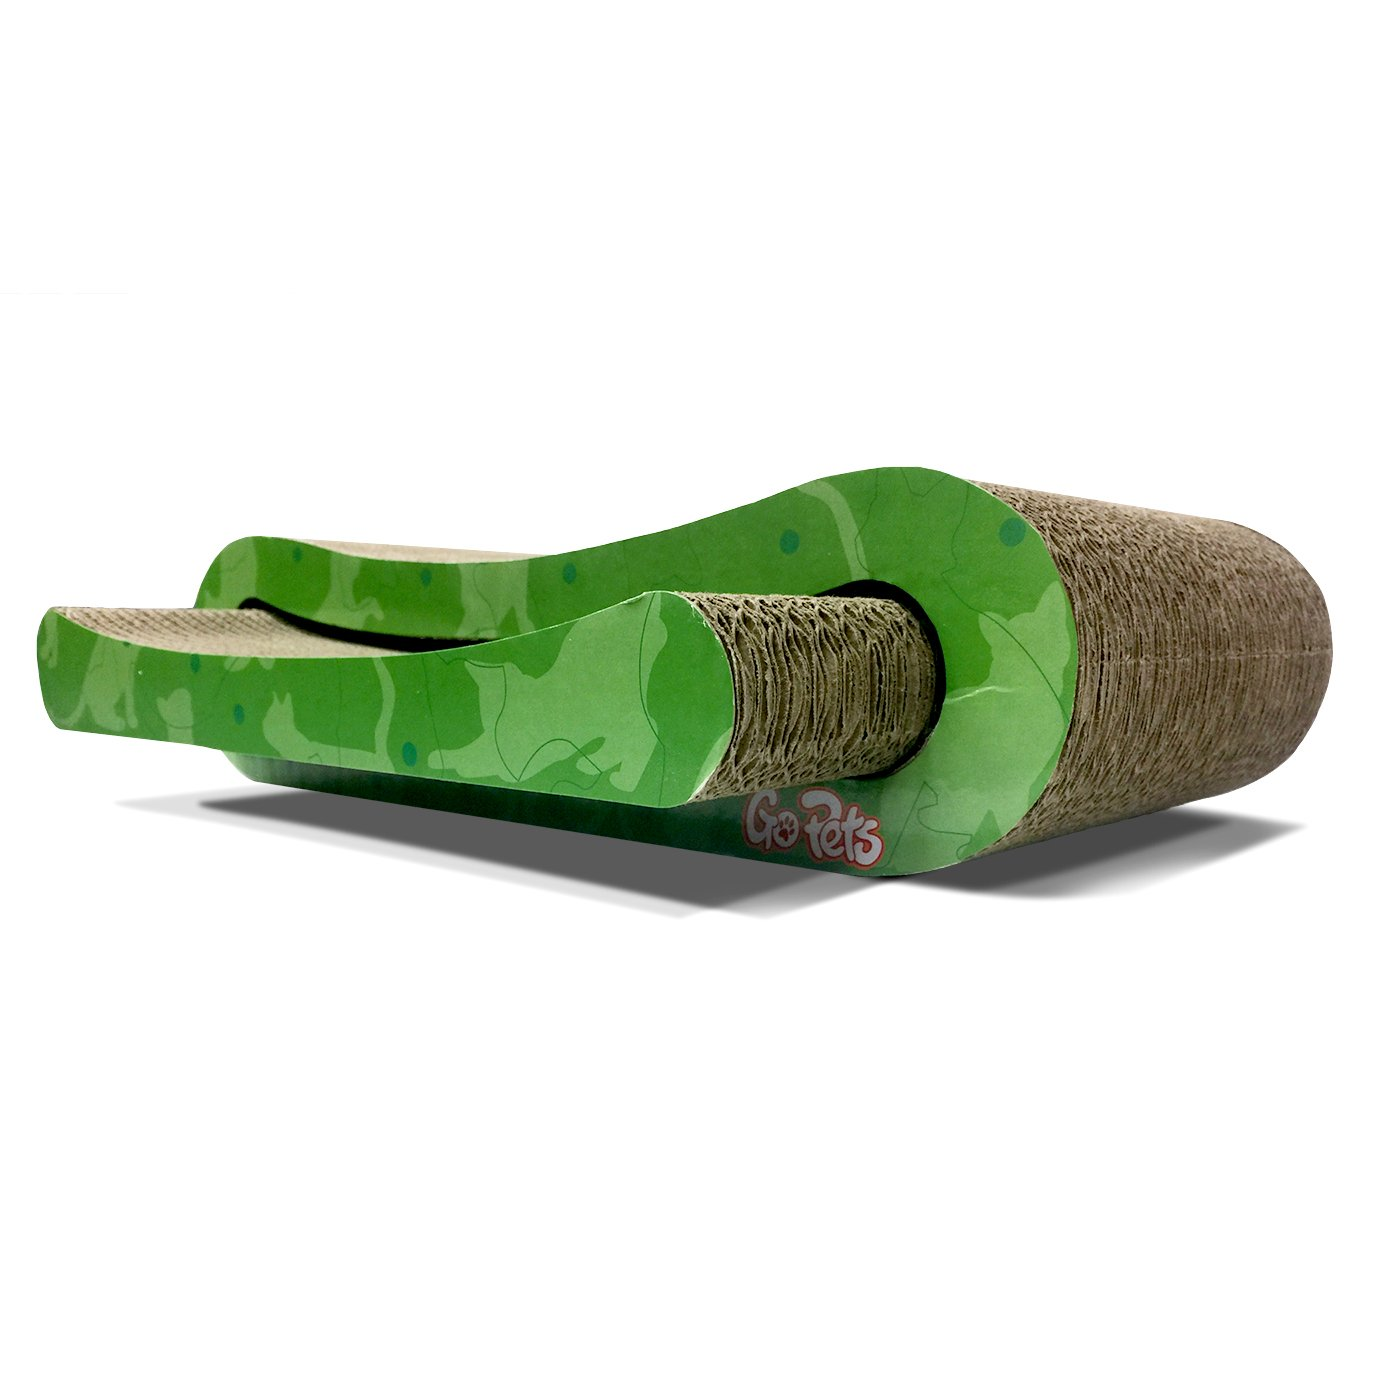 GoPets Premium Cat Scratcher, Infinity Lounge Corrugated Cardboard is Reversible with Additional Insert to Last 4X Longer, Includes 1 Pack Catnip, Ergonomic Scratching Post, Cutouts to Hide Toys